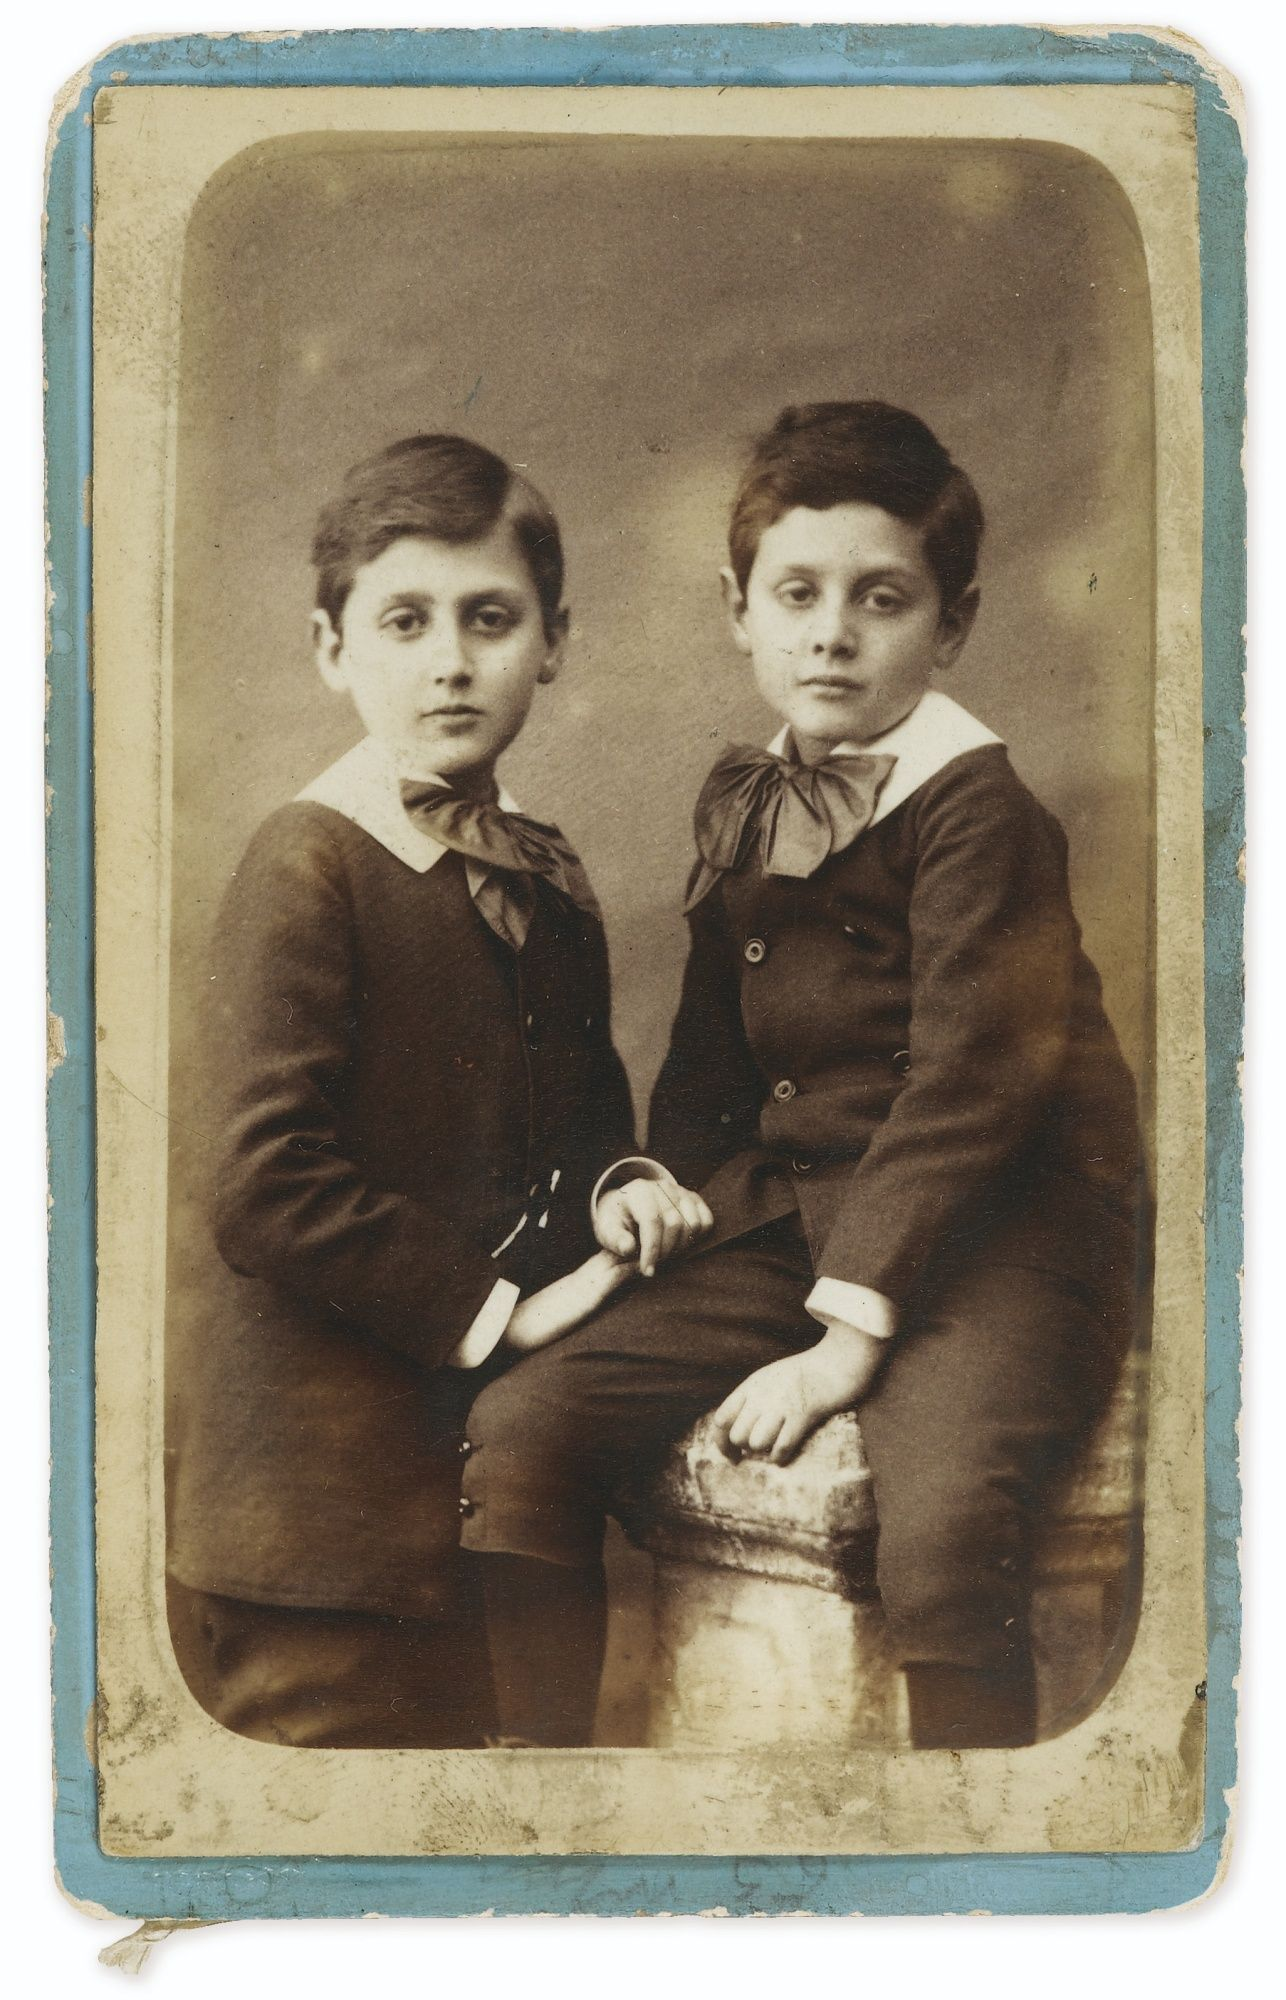 Studio Hermann Cie Marcel Et Robert Proust Enfants Vers 1882 Photographie Originale Estimate 2 000 3 000 Eur Lot Art Quiz First Art Art Exhibition